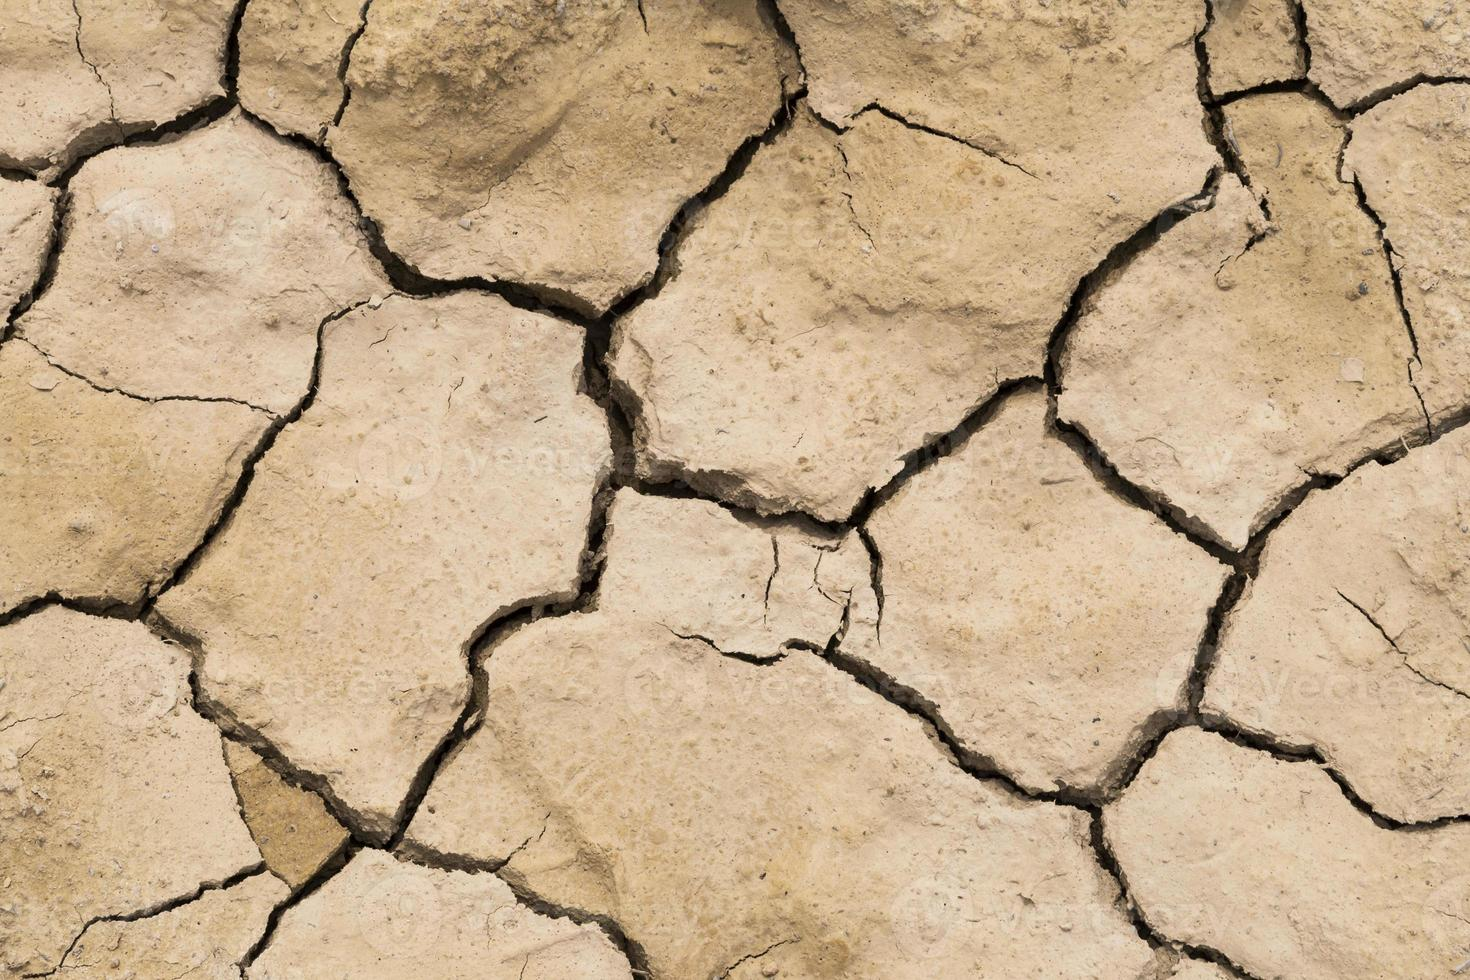 Dry cracked earth texture photo